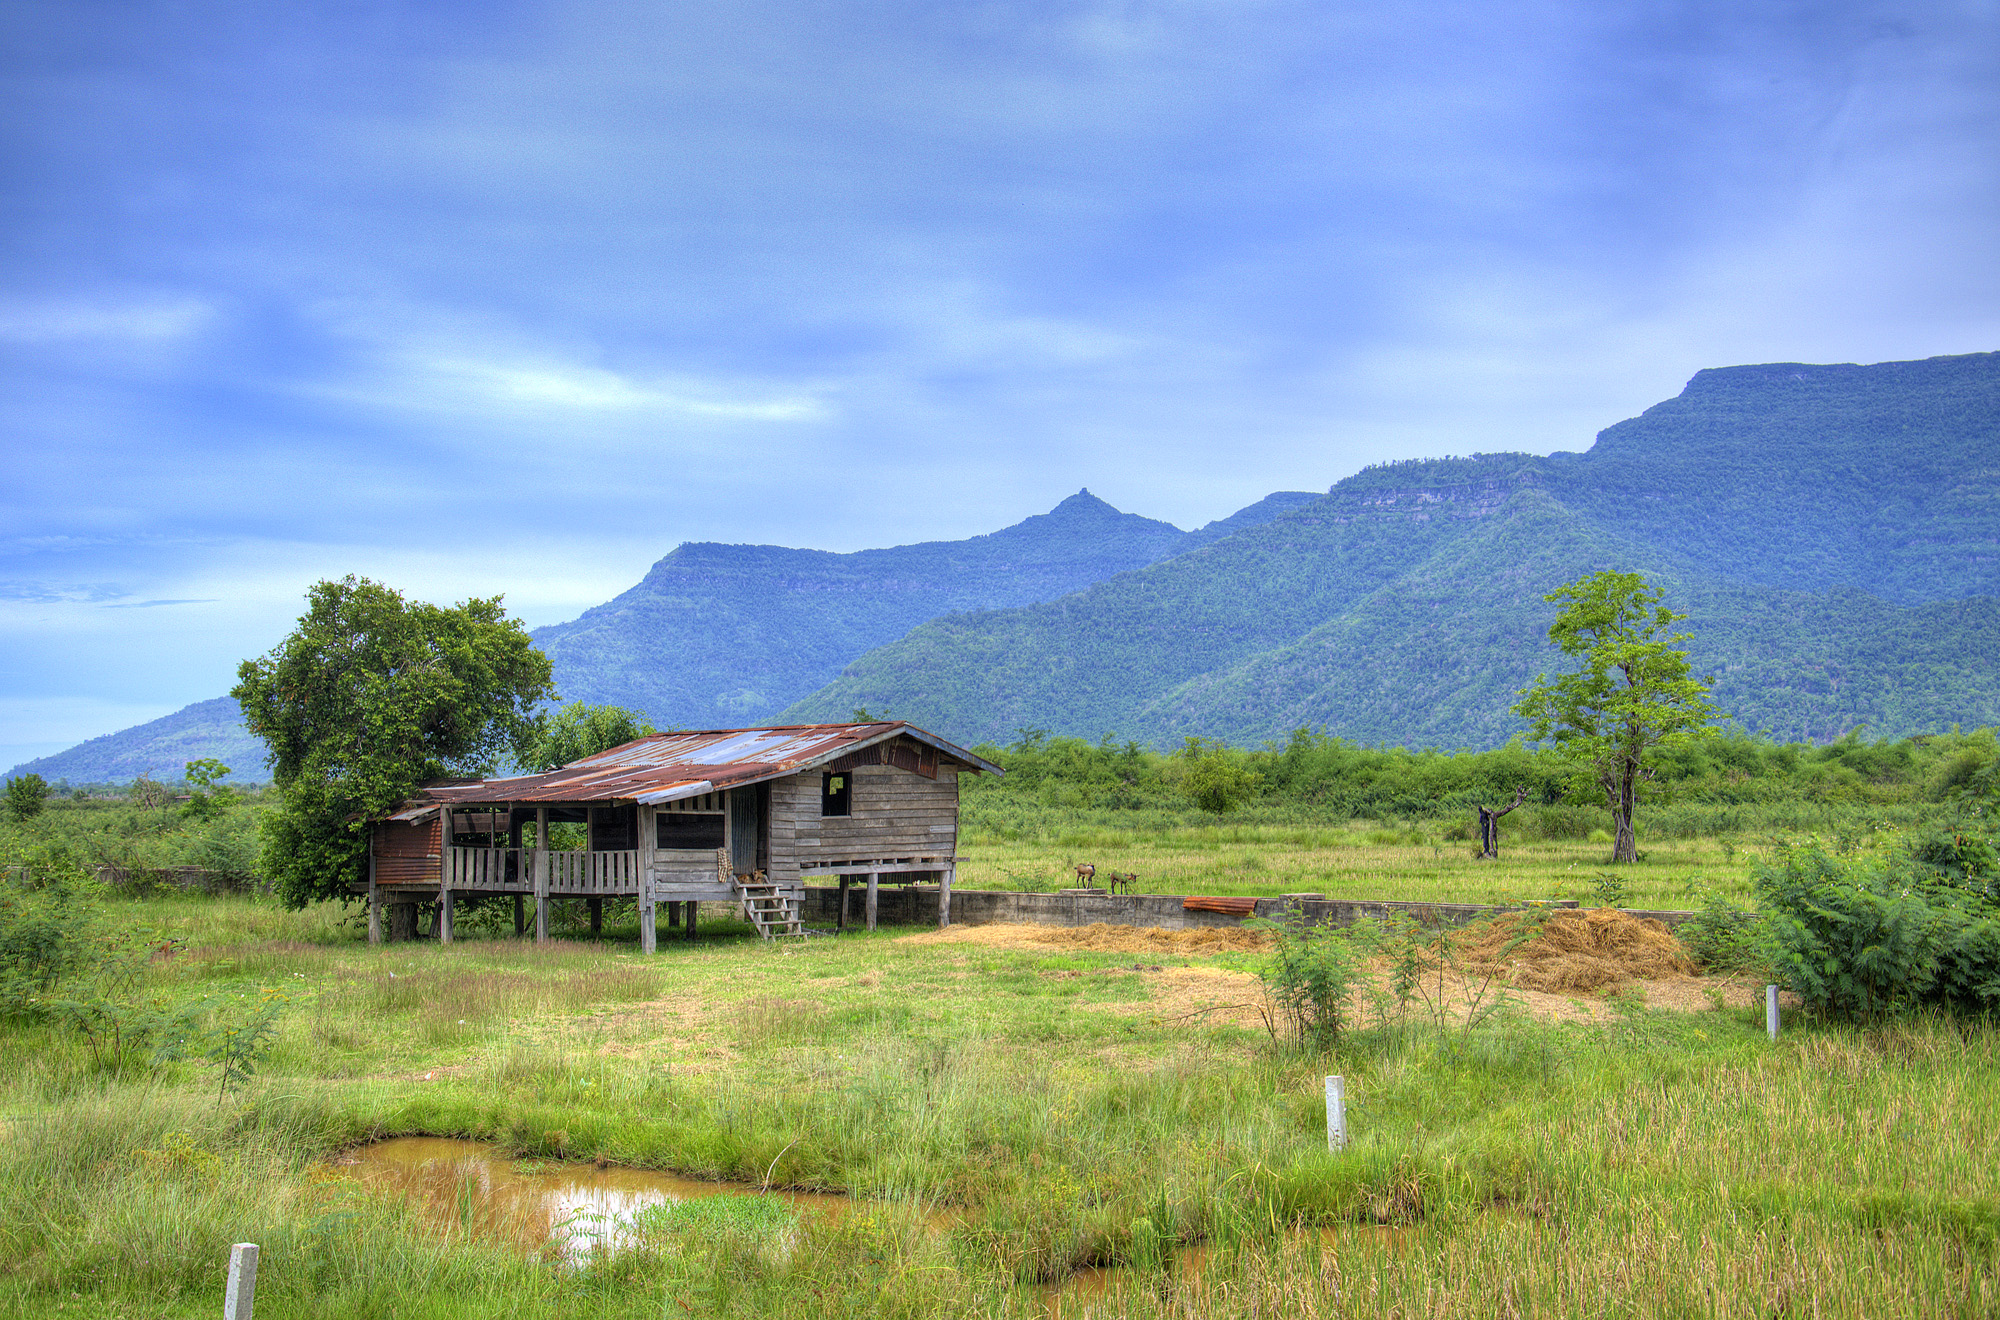 house, rice paddy, and mountains